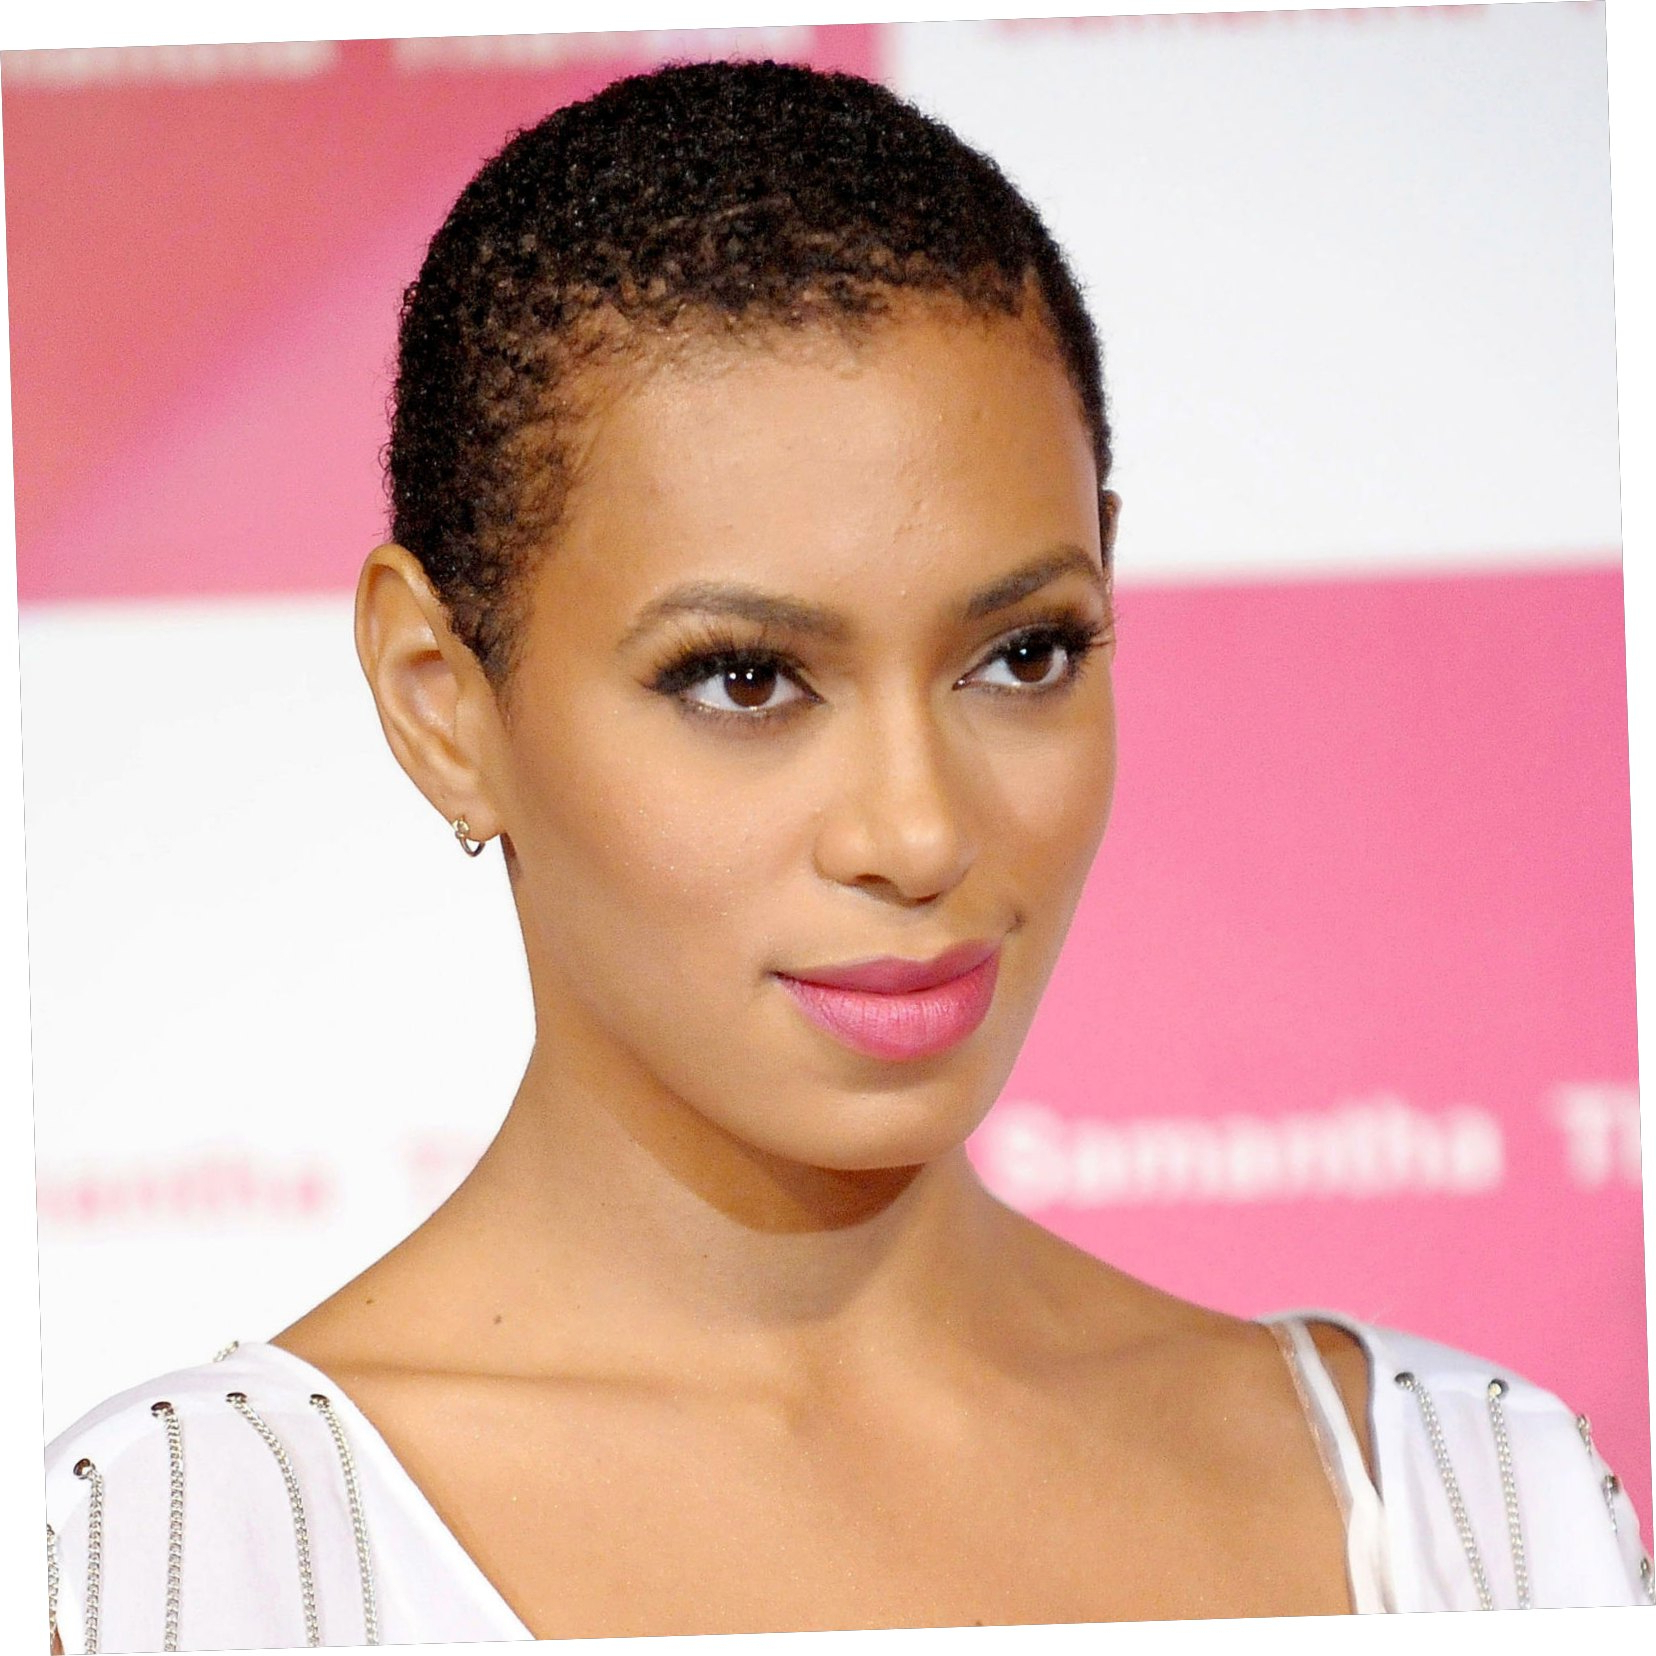 Black Ladies Natural Hair Cuts Jazzy Black Women Short Hairstyles Inside Short Haircuts For Black Women With Natural Hair (View 13 of 25)